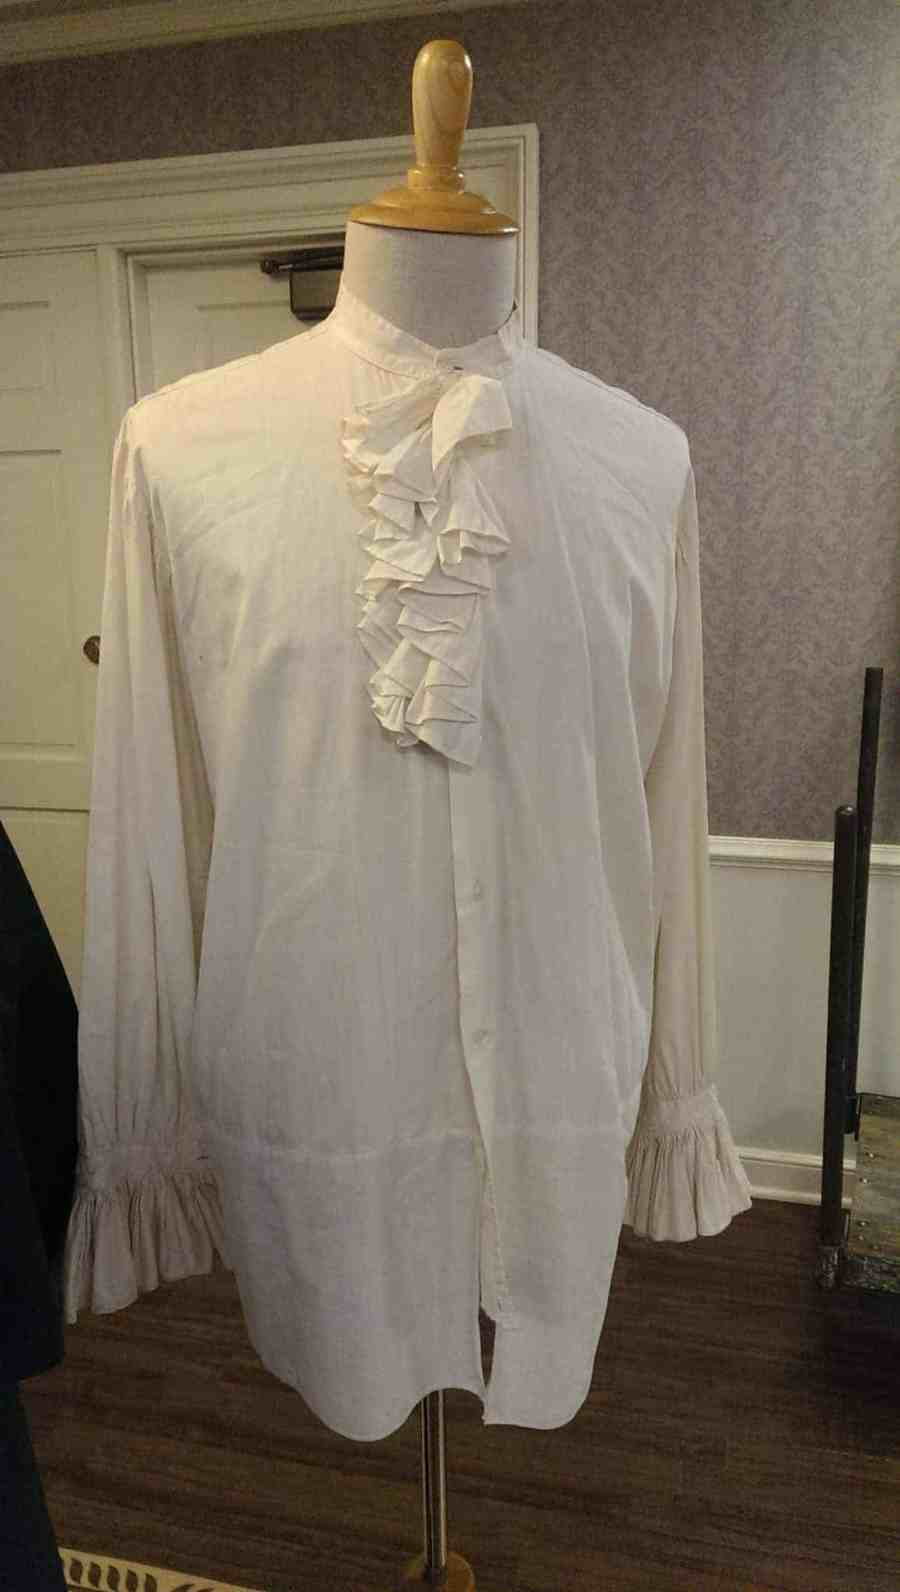 Shirt worn by Morton Lowry as Sir Hugo Baskerville in THE HOUND OF THE BASKERVILLES (1939). Long, loose cream shirt with ruffled collar.